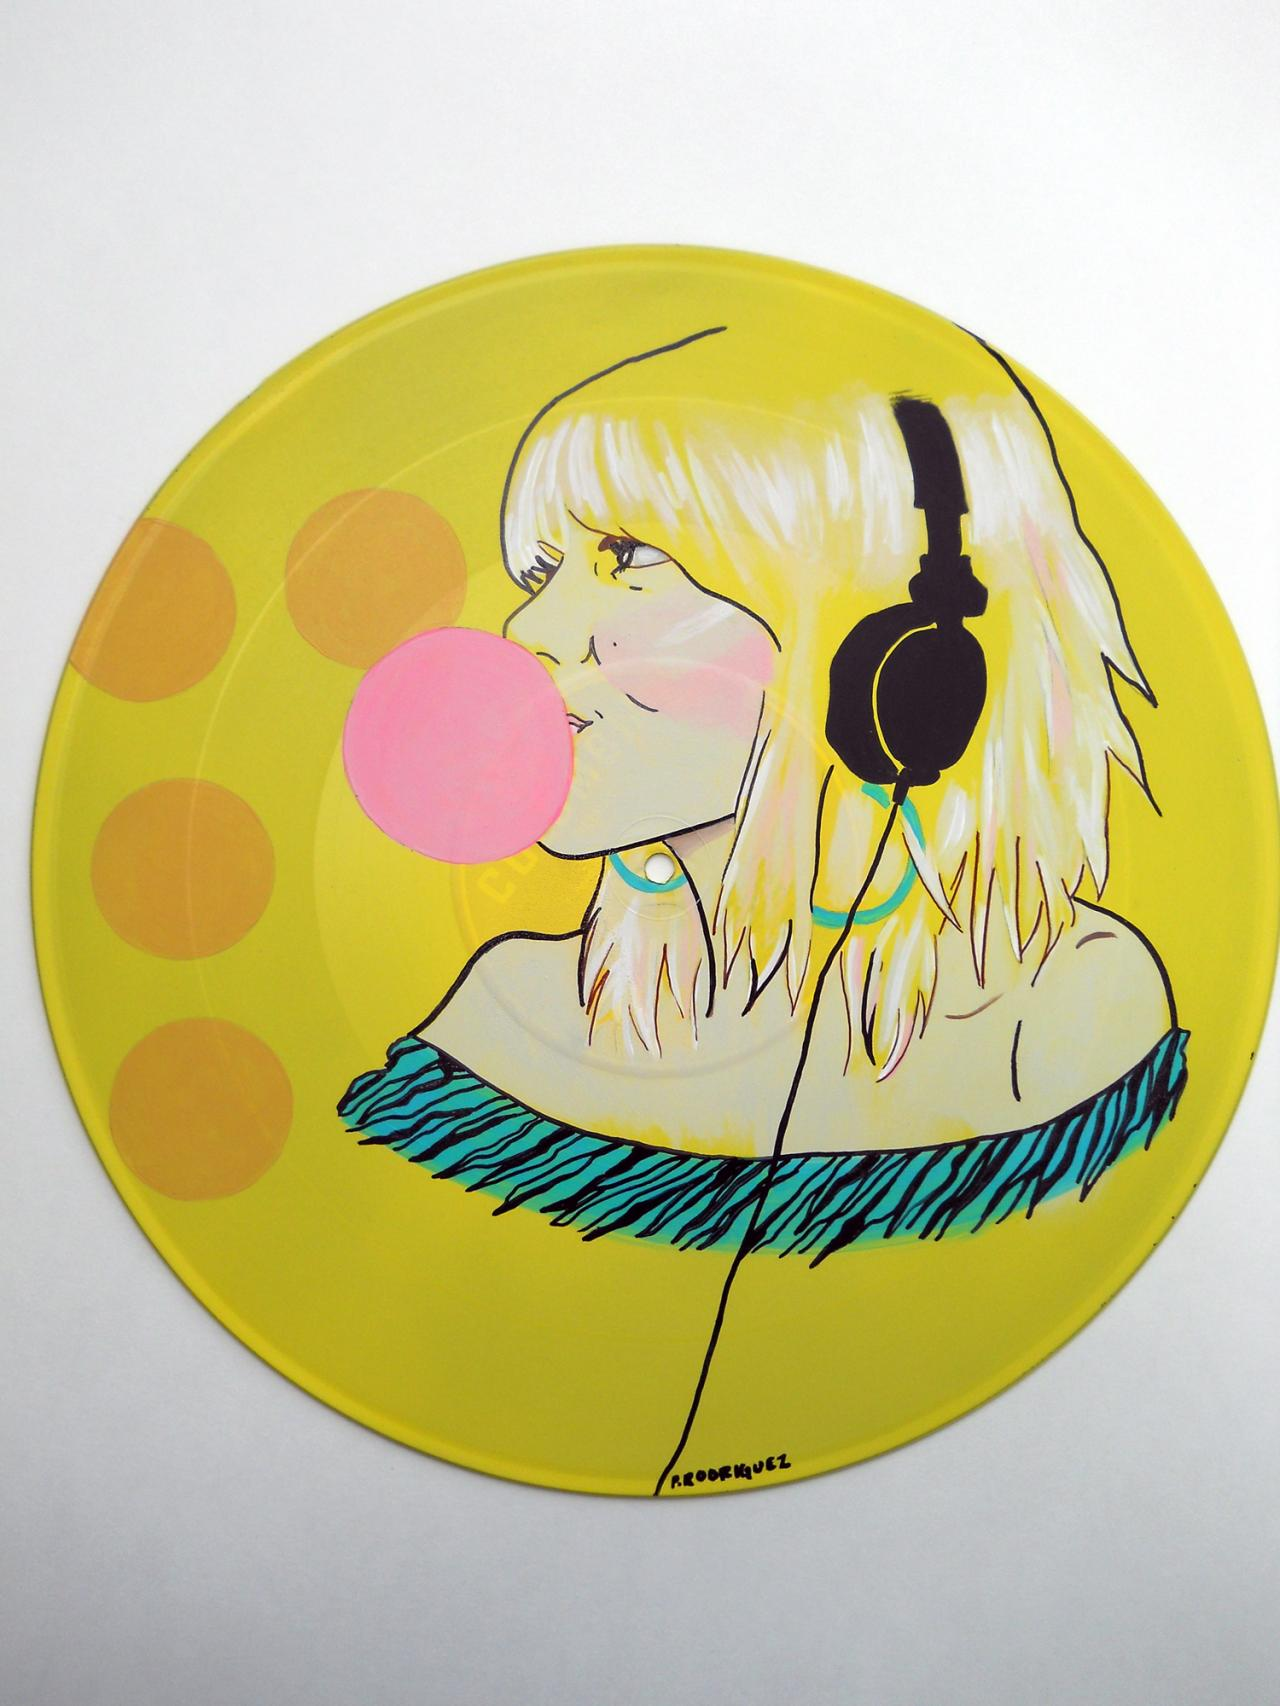 electriclollipop - Vinyl Record Art